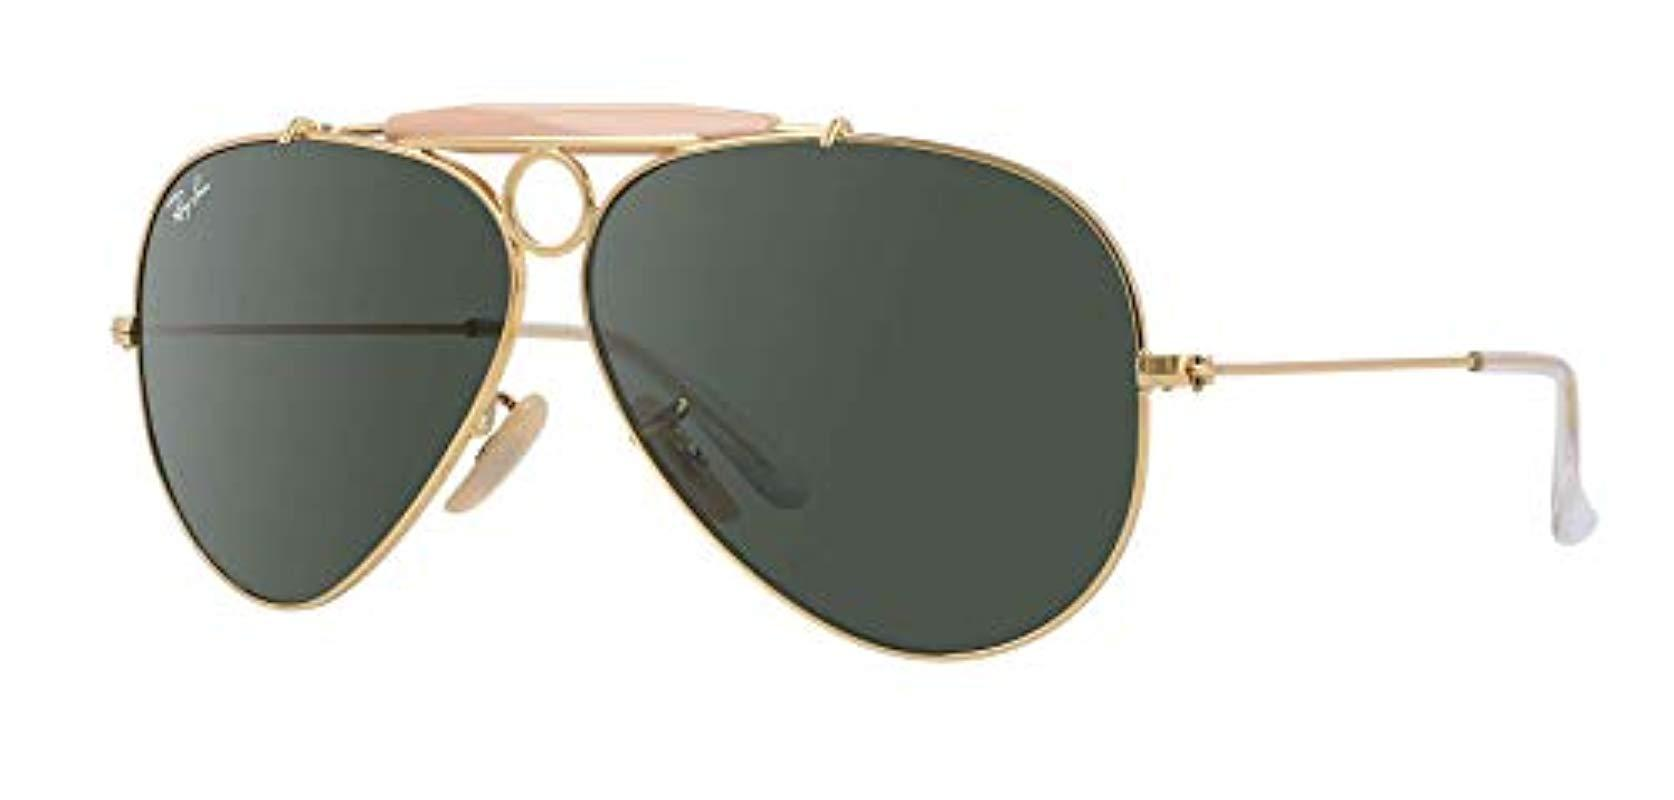 3ffbd881465 Lyst - Ray-Ban Shooter 3138 Aviator Sunglasses in Green for Men